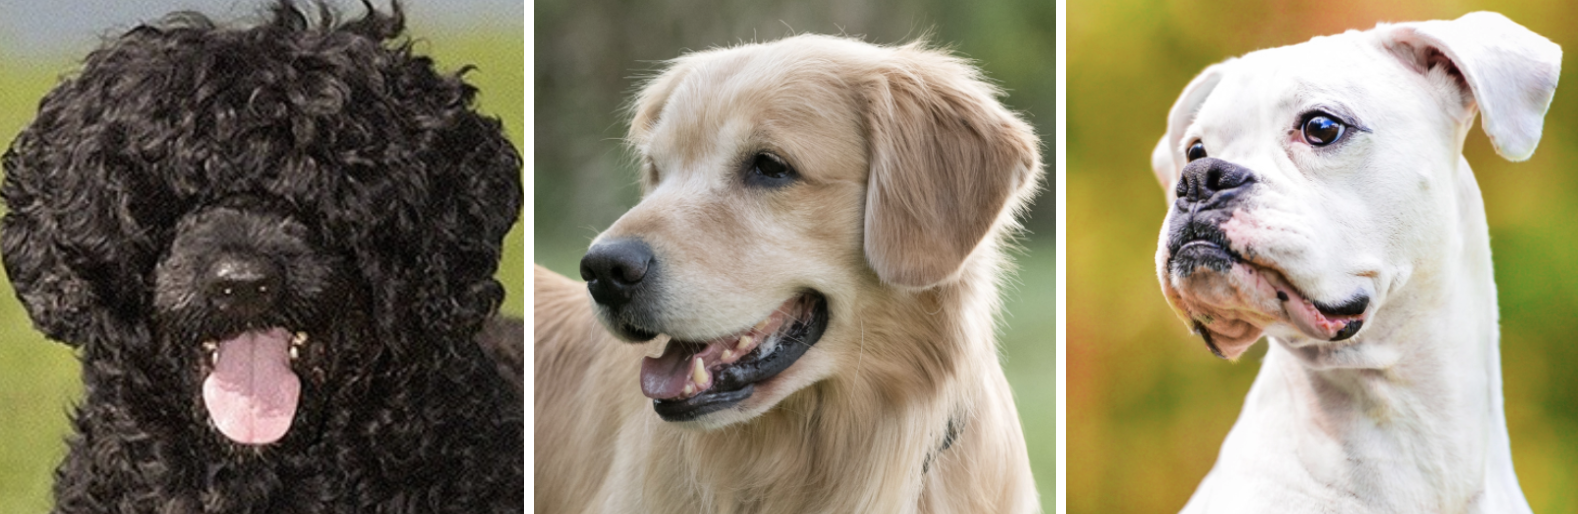 A Portuguese water dog, golden retreiver, and boxer each photographed side-by-side